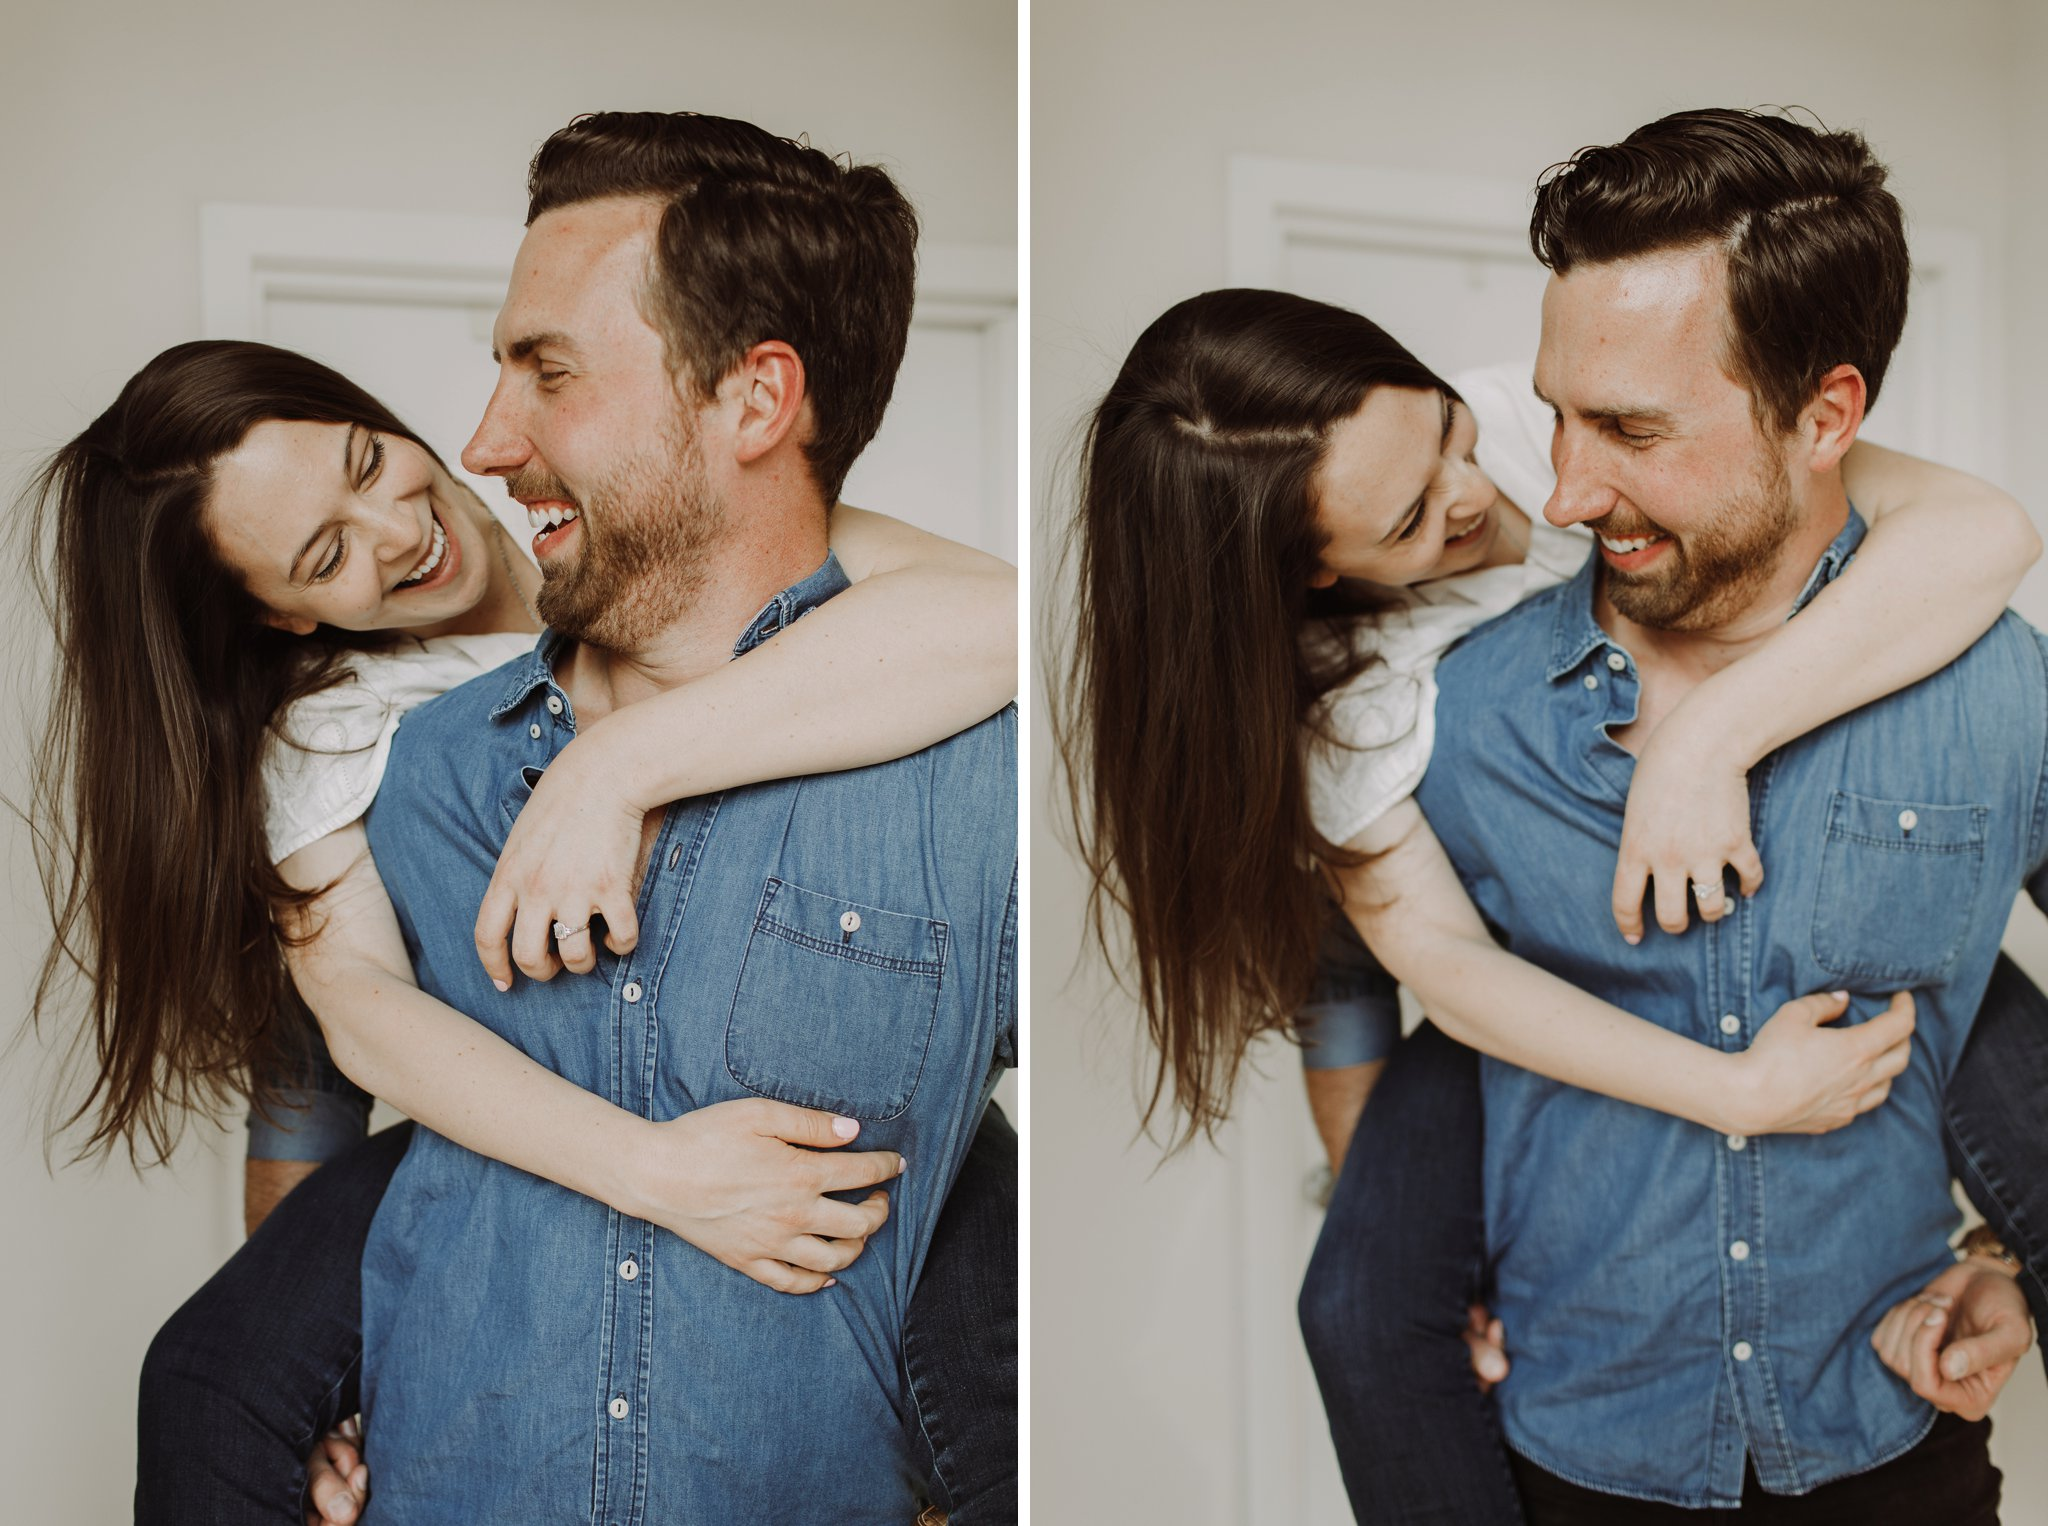 in-home lifestyle Dumbo Brooklyn engagement photography